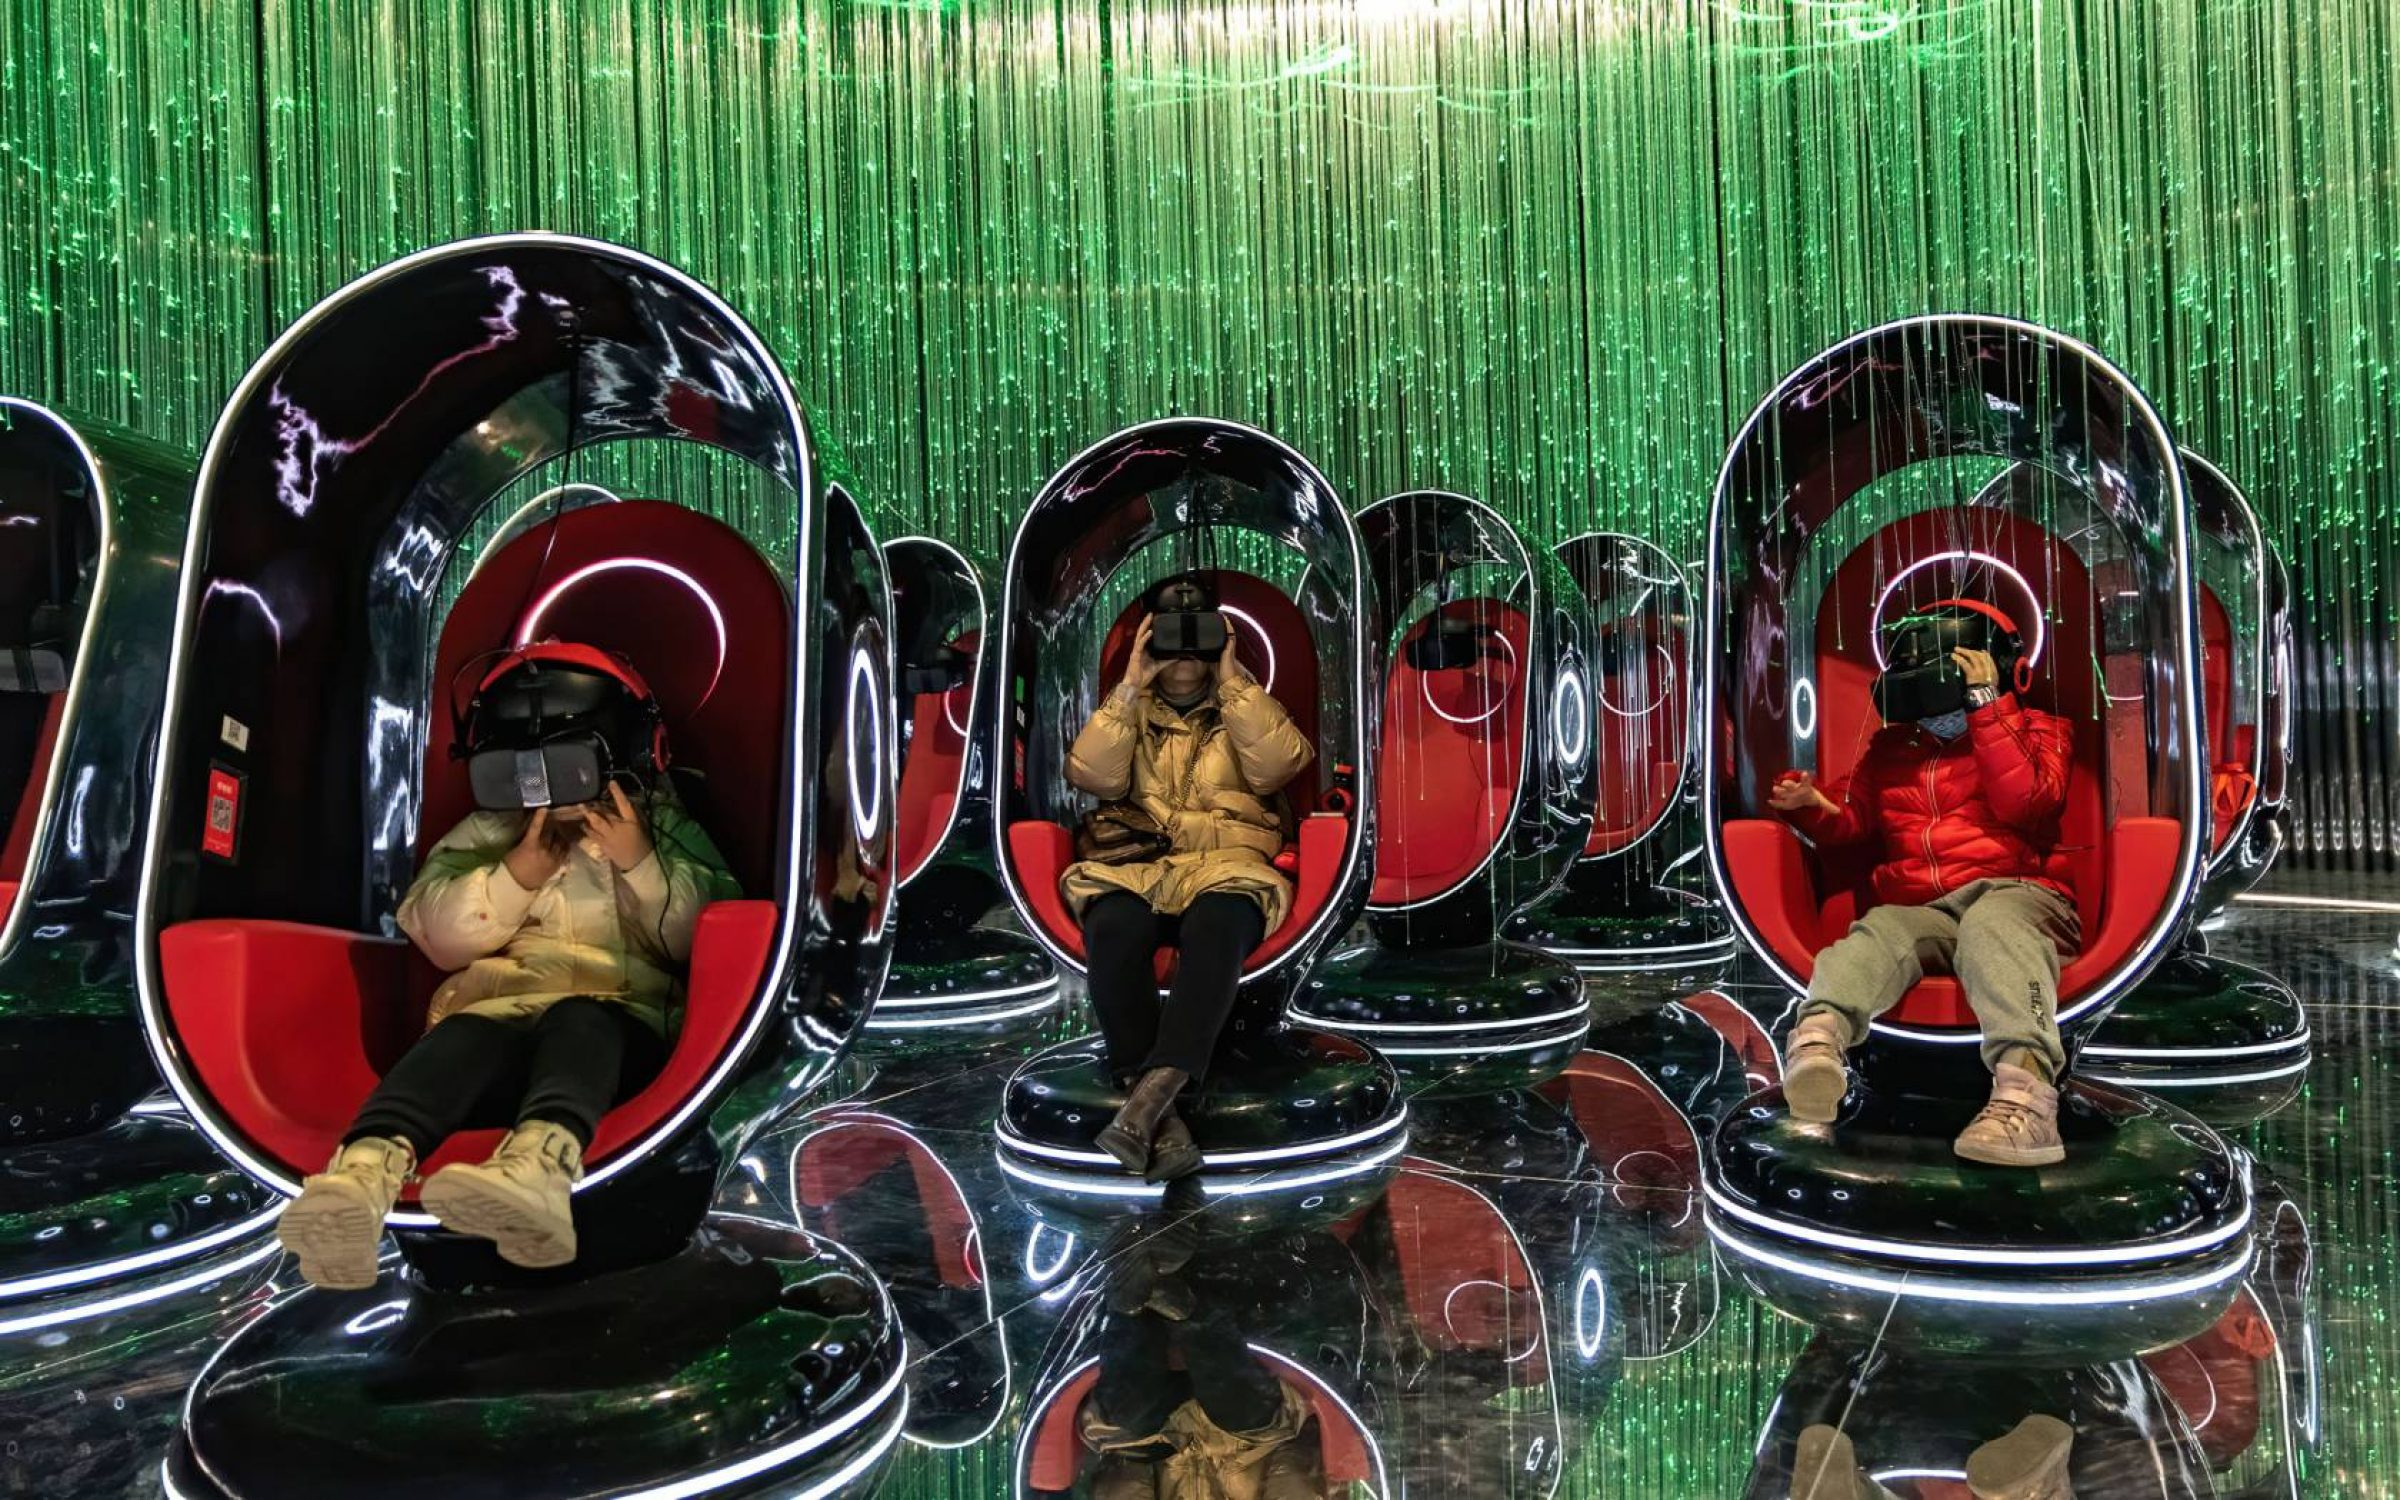 People wearing VR headsets watch films during an exhibition at 'AHSPACE' immersive live broadcast base in Hefei, Anhui Province of China.